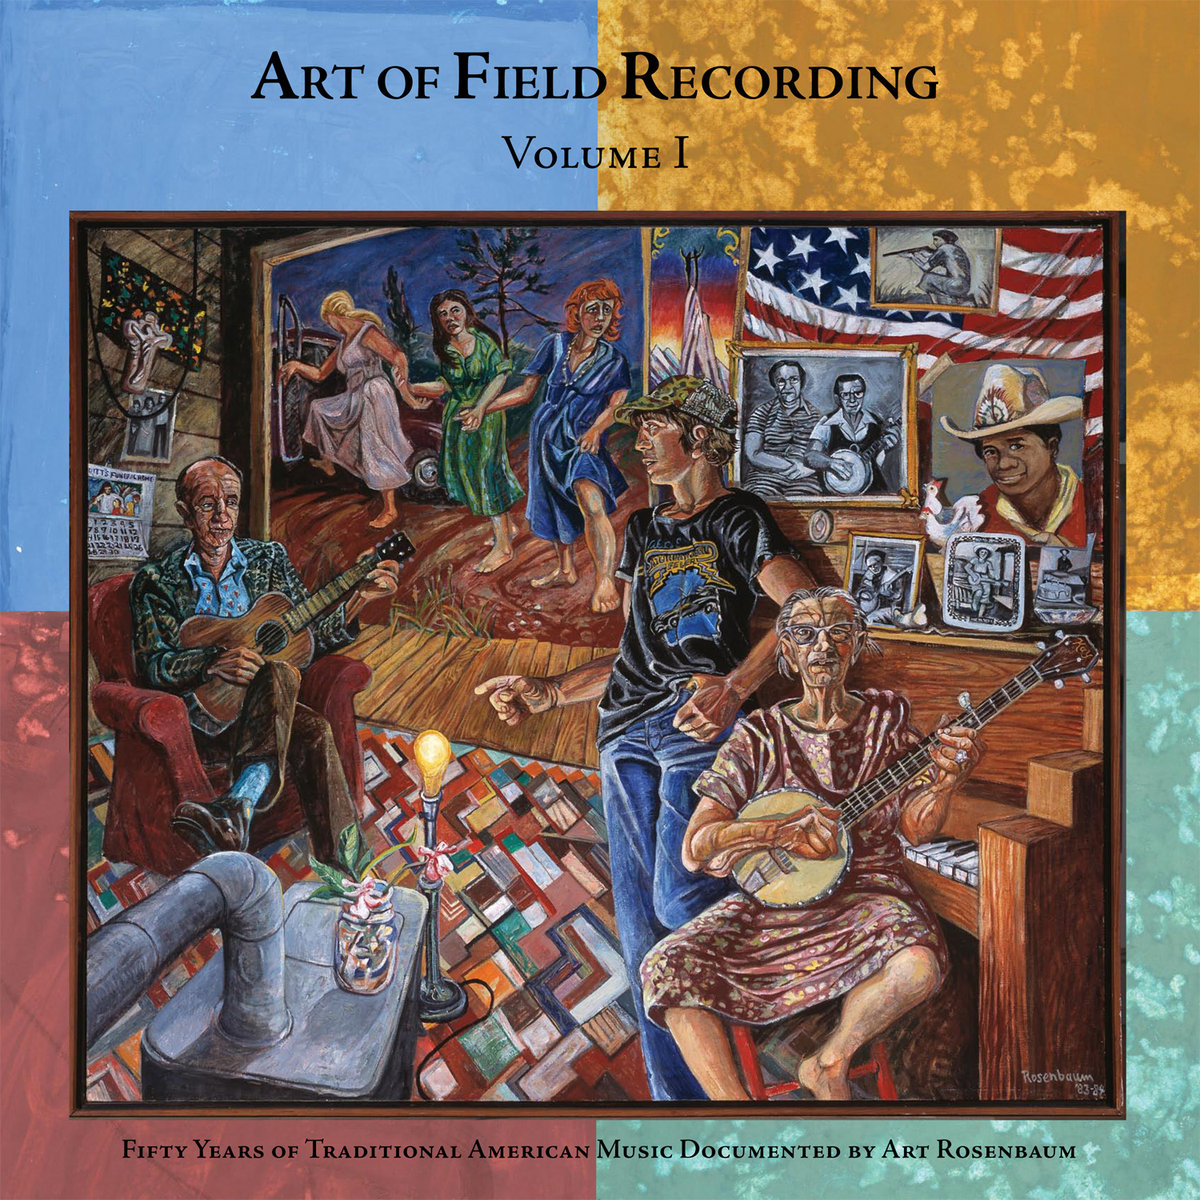 """Art of Field Recording, Vol. I: 50 Years of Traditional American Music Documented by Art Rosenbaum  Release Date: November 06, 2007 Label: Dust-to-Digital  SERVICE: Transfer, Restoration, Mastering SOURCE MATERIAL: 1/4"""" Tape, DAT NUMBER OF DISCS: 4 GENRE: Gospel, Blues, Country FORMAT: CD"""